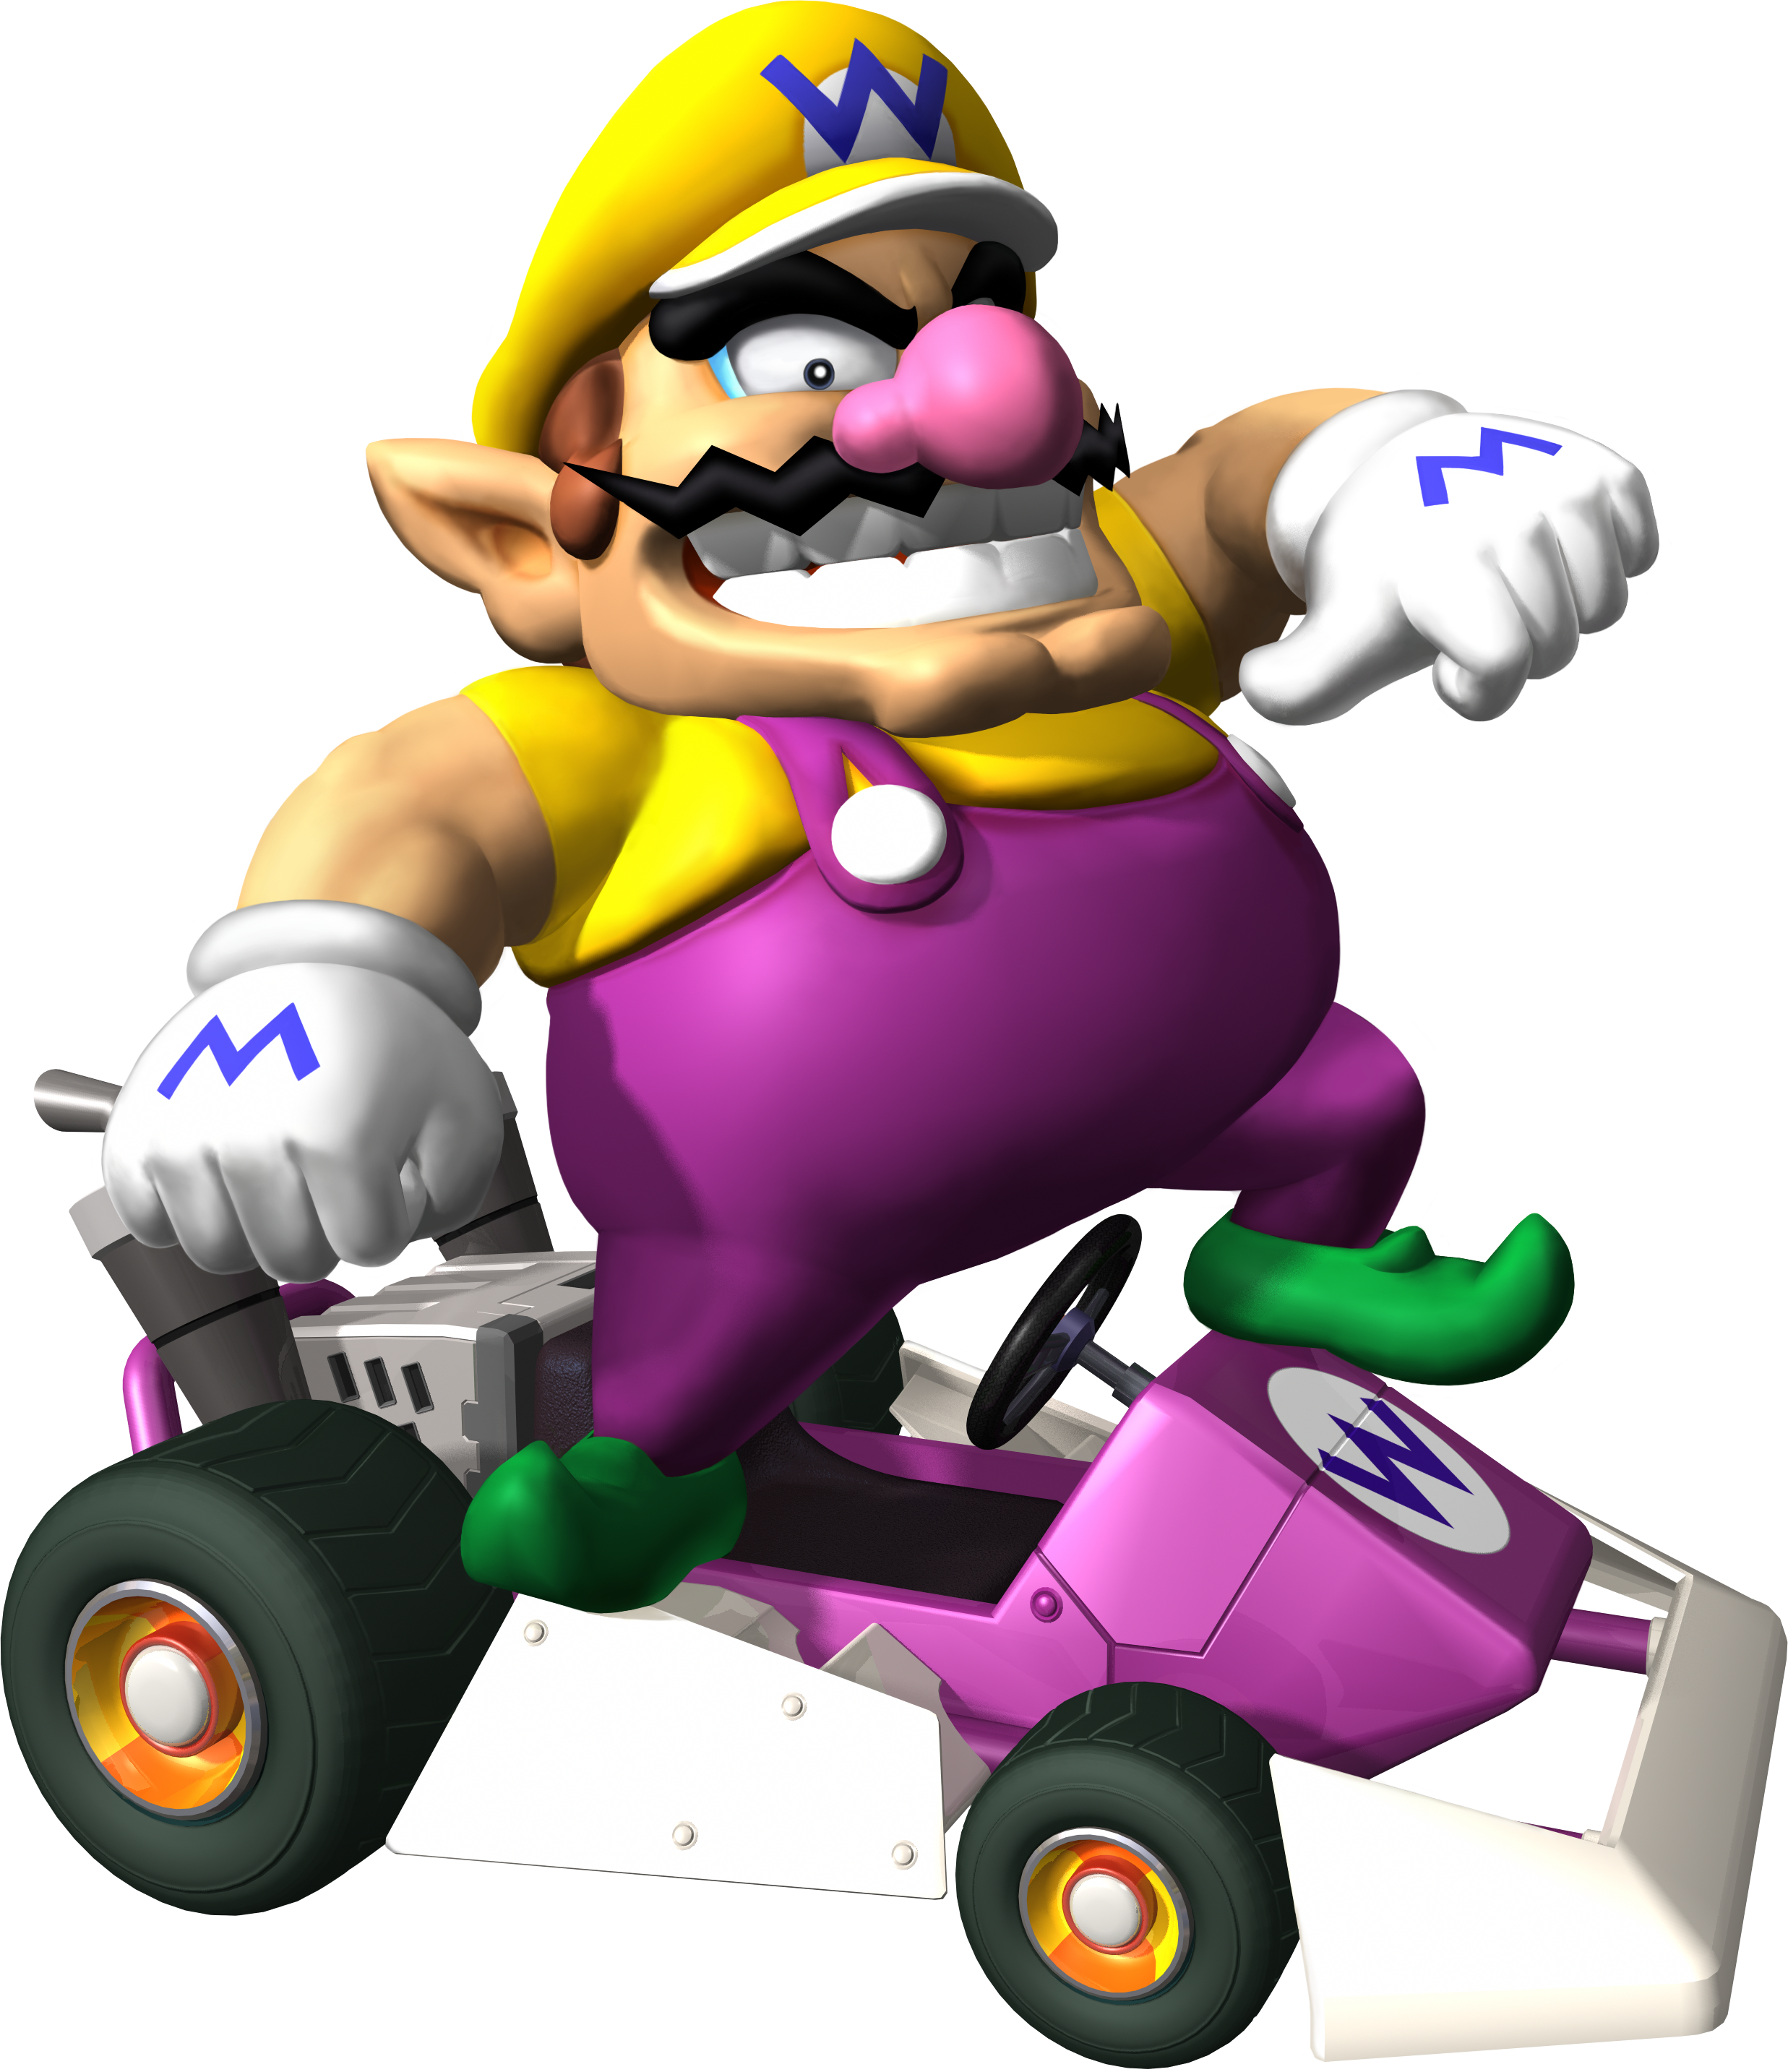 Donkey kong mario kart wii car tuning - How To Draw Wario And Car From Wii Mario Kart Game Drawing Lesson How To Draw Step By Step Drawing Tutorials Donkey Kong